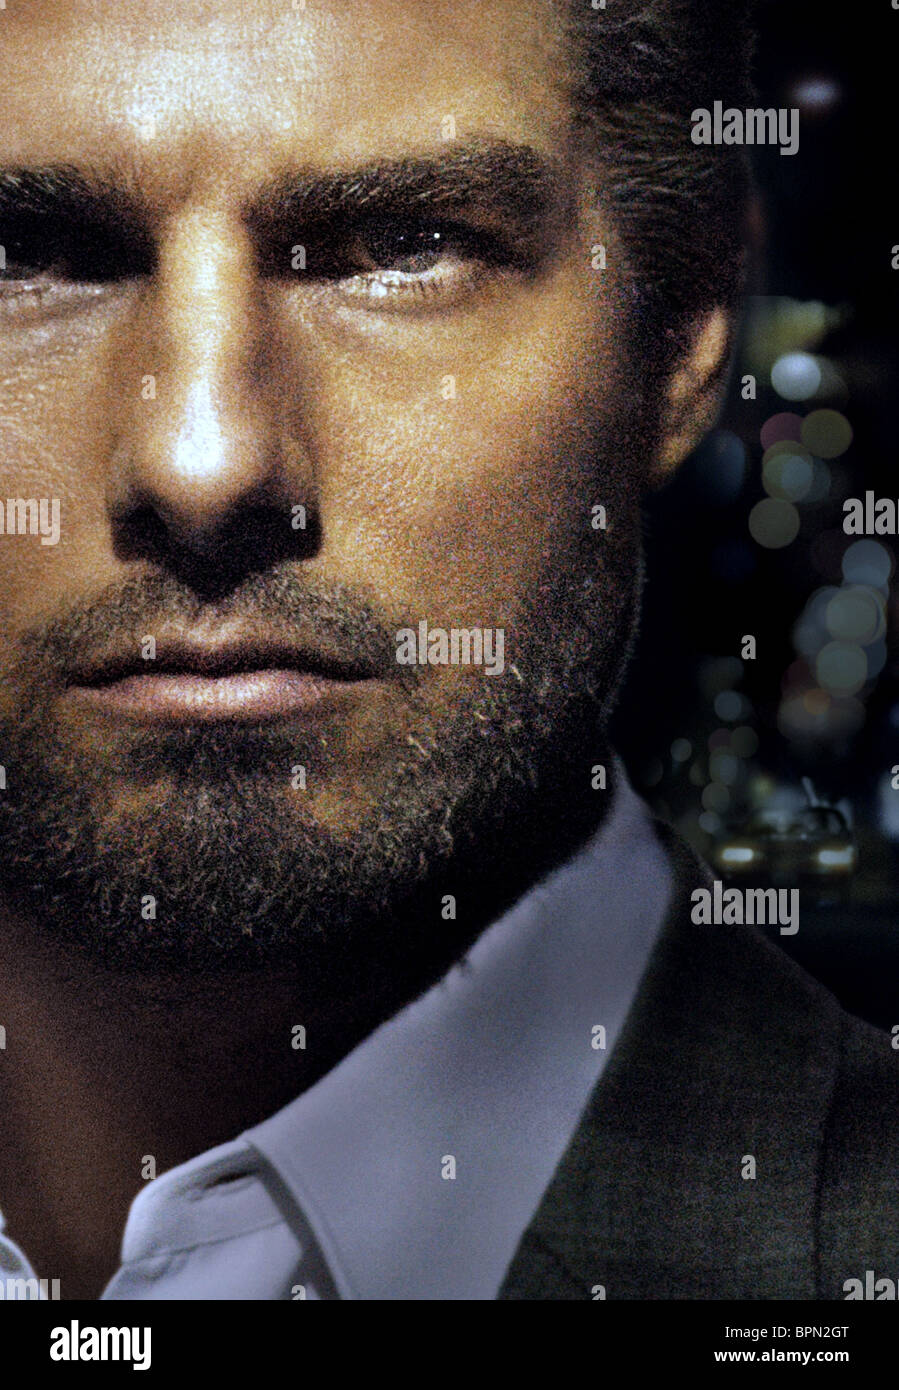 Tom Cruise Stock Photos Amp Tom Cruise Stock Images Alamy